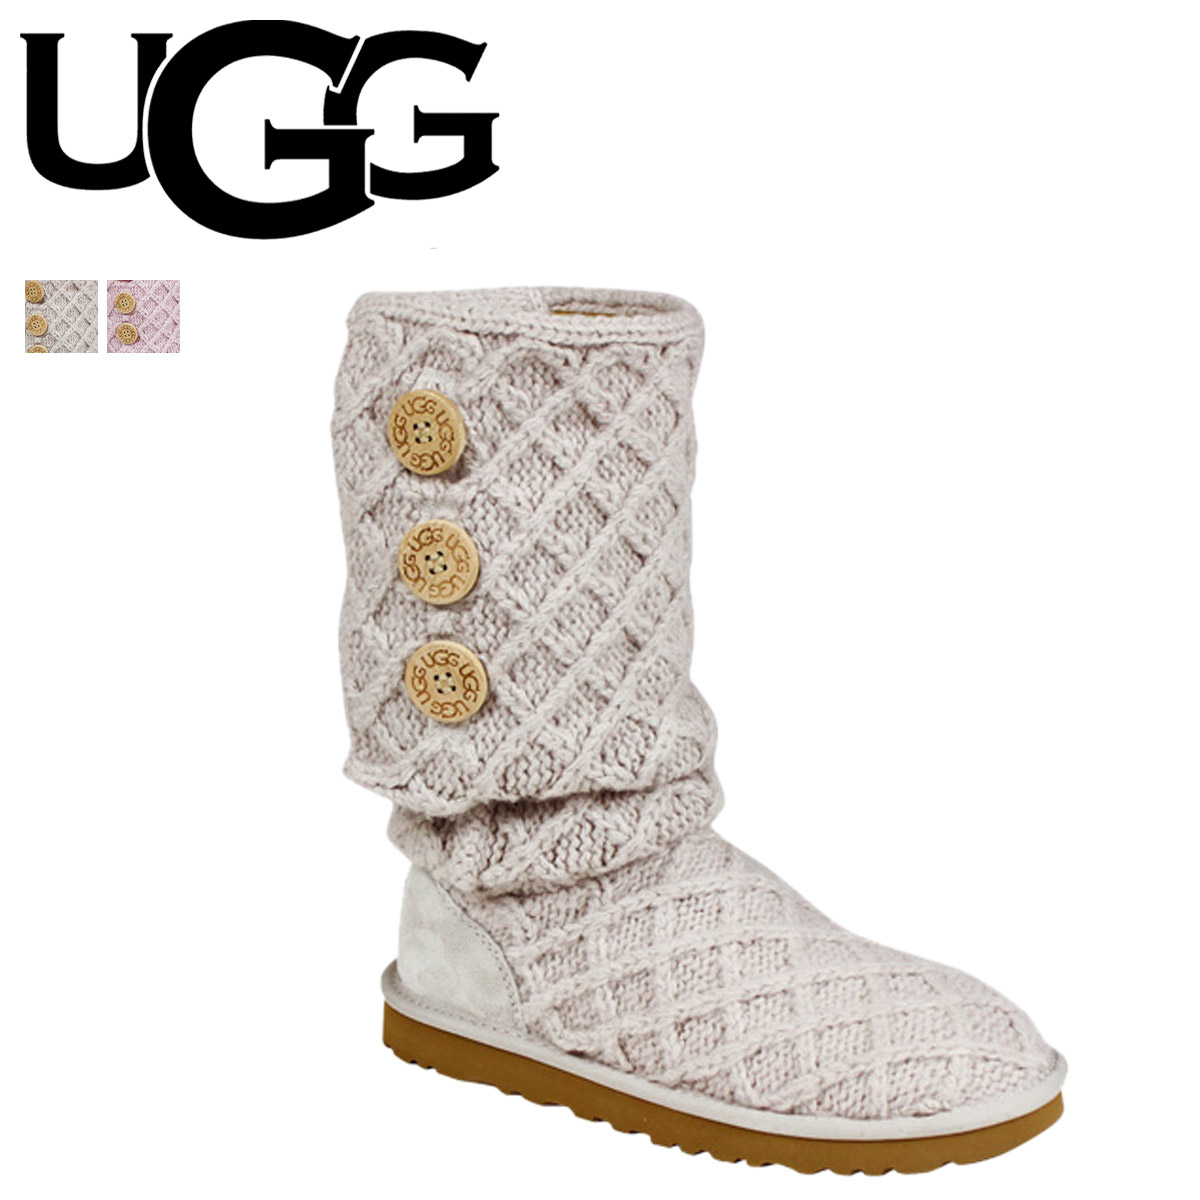 WOMENS UGG UGG women's lattice CARDI boots 2 color 3066 LATTICE CARDY women's sheepskin new